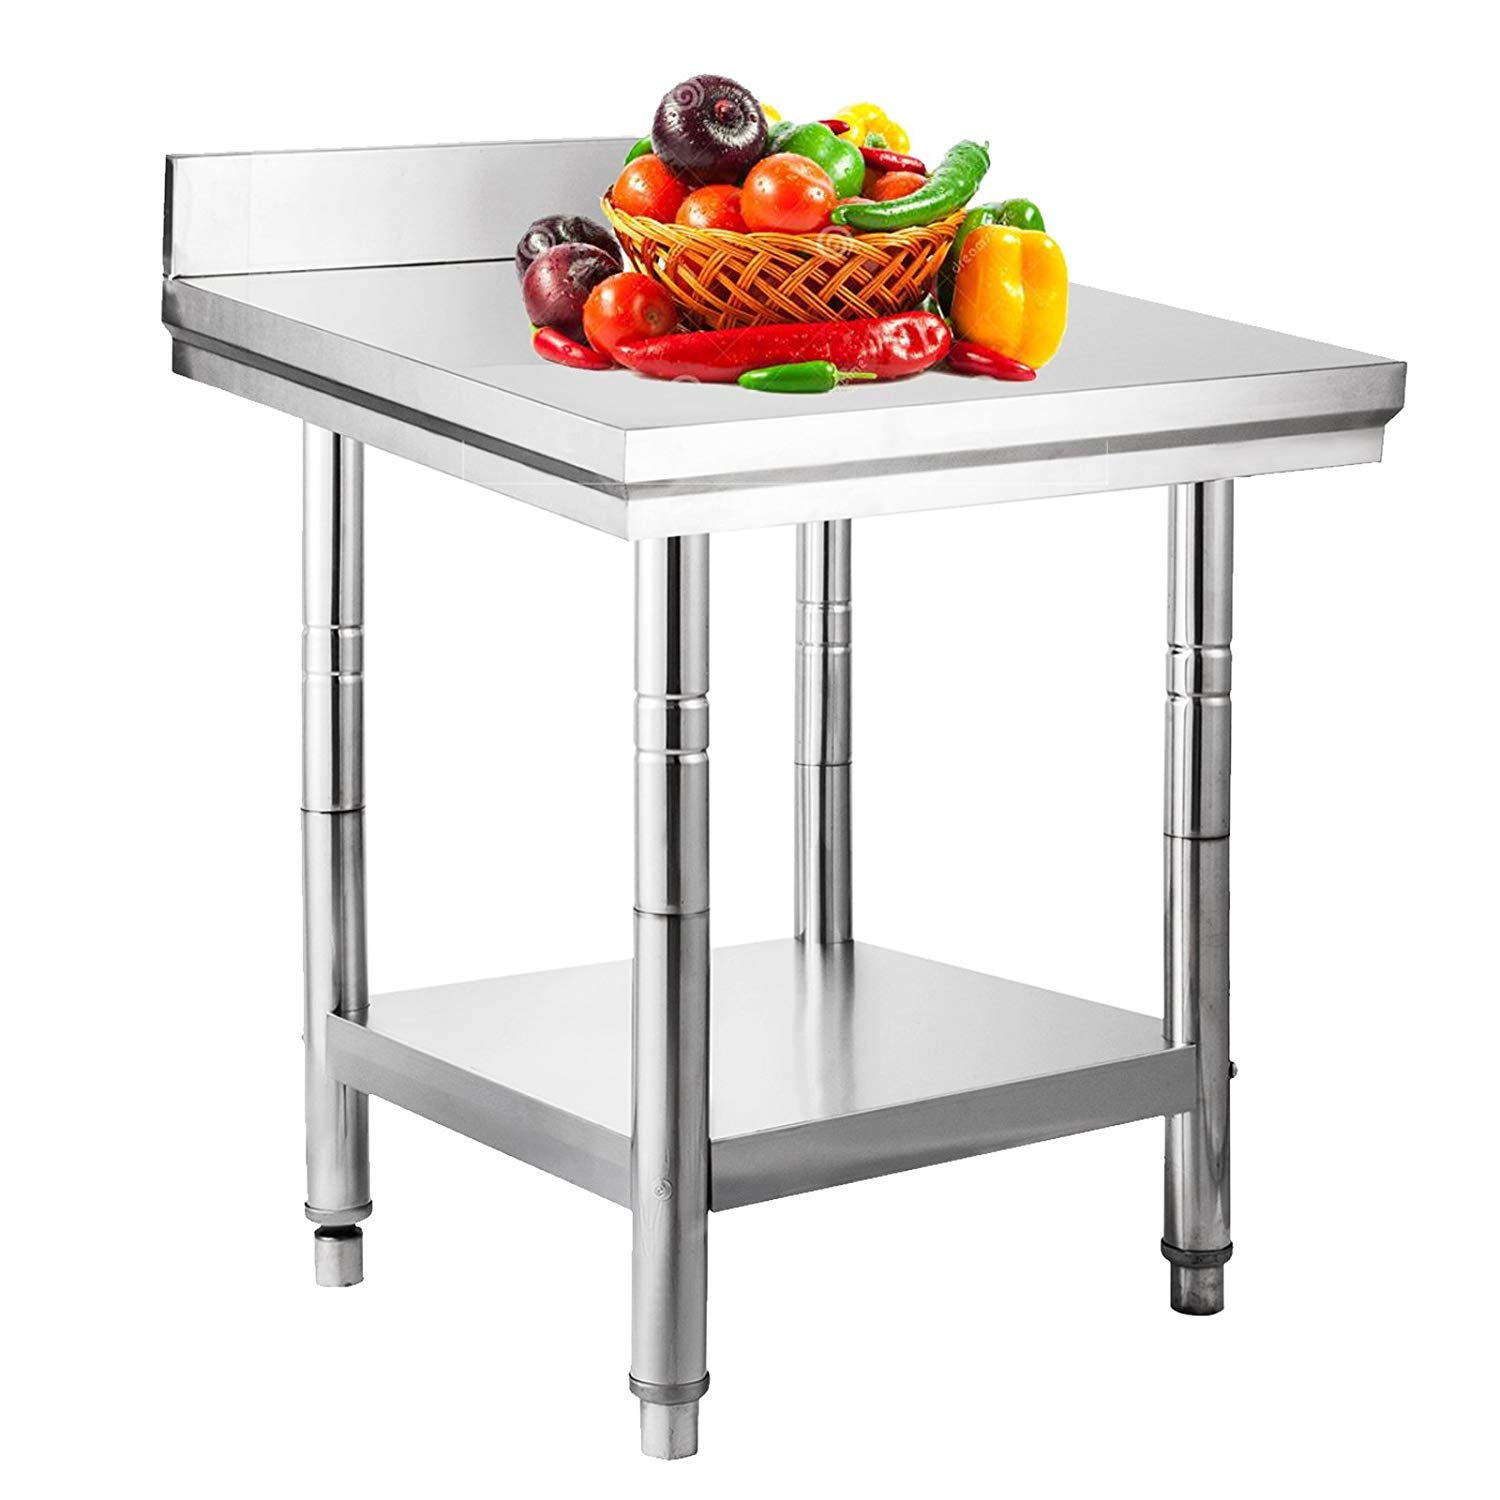 Mophorn Stainless Steel Work Table with Backsplash 24x24 Inch Commercial Food Prep Worktable